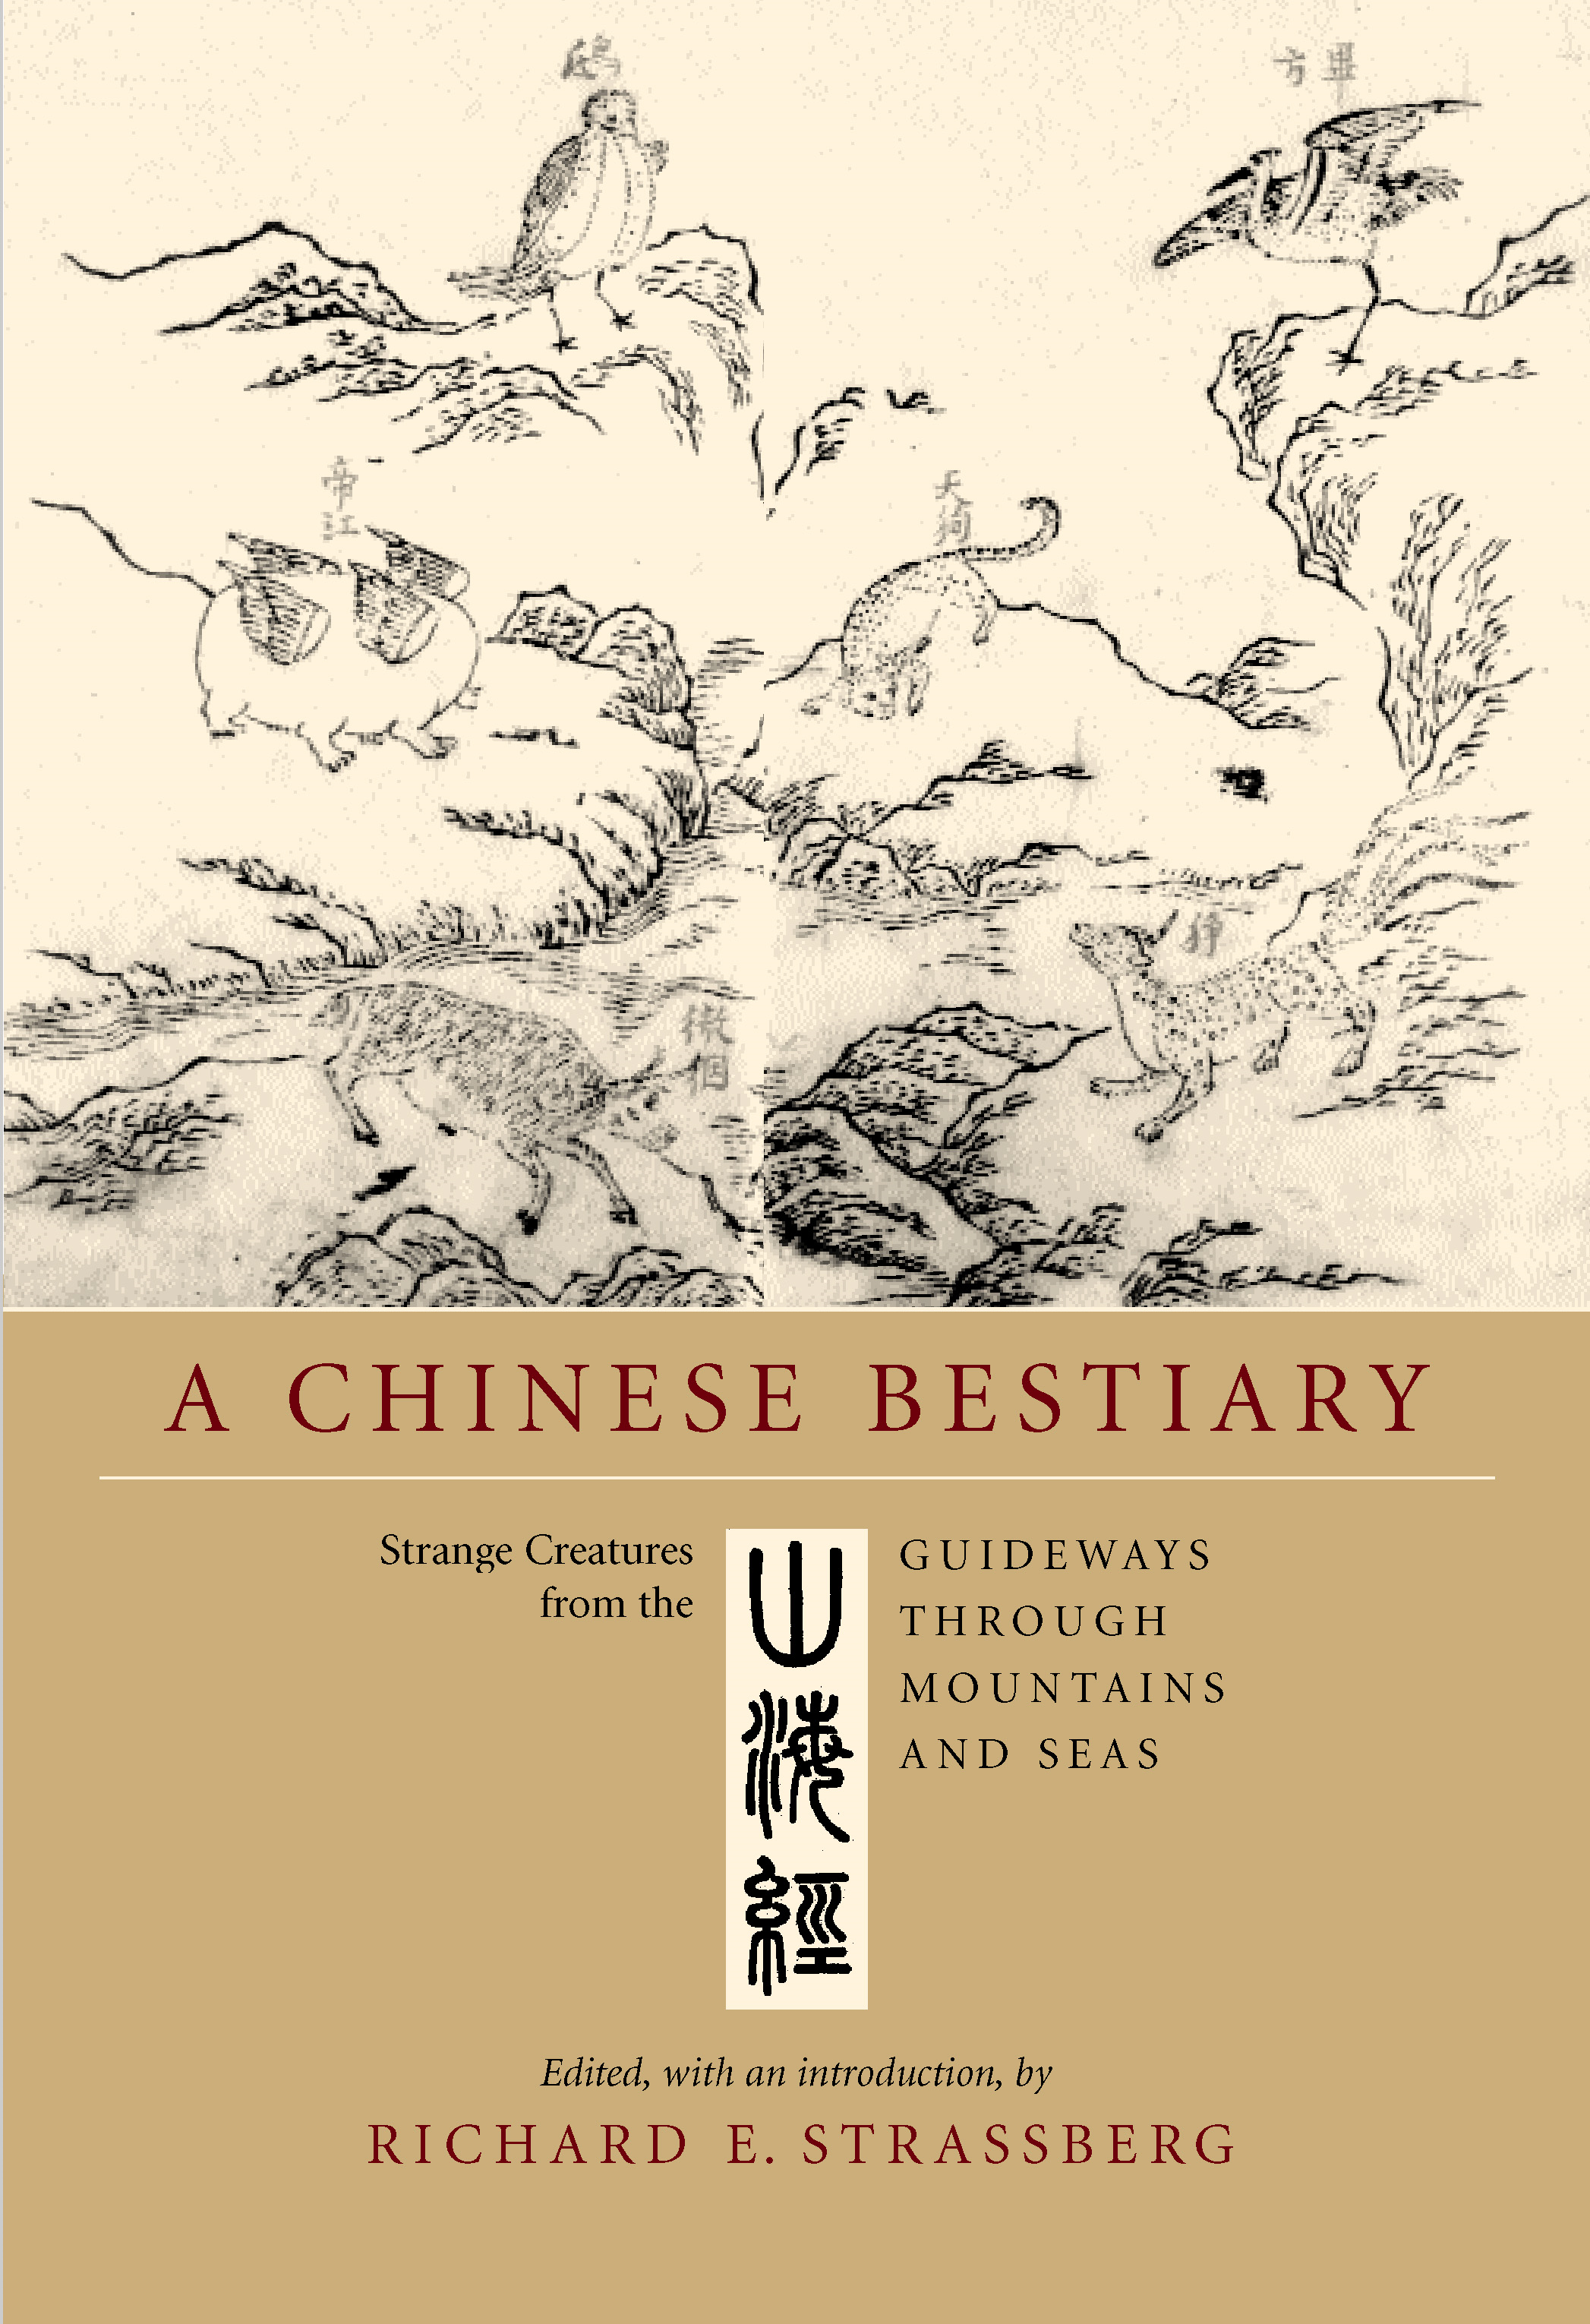 A Chinese Bestiary: Strange Creatures from the <i>Guideways through Mountains and Seas</i>